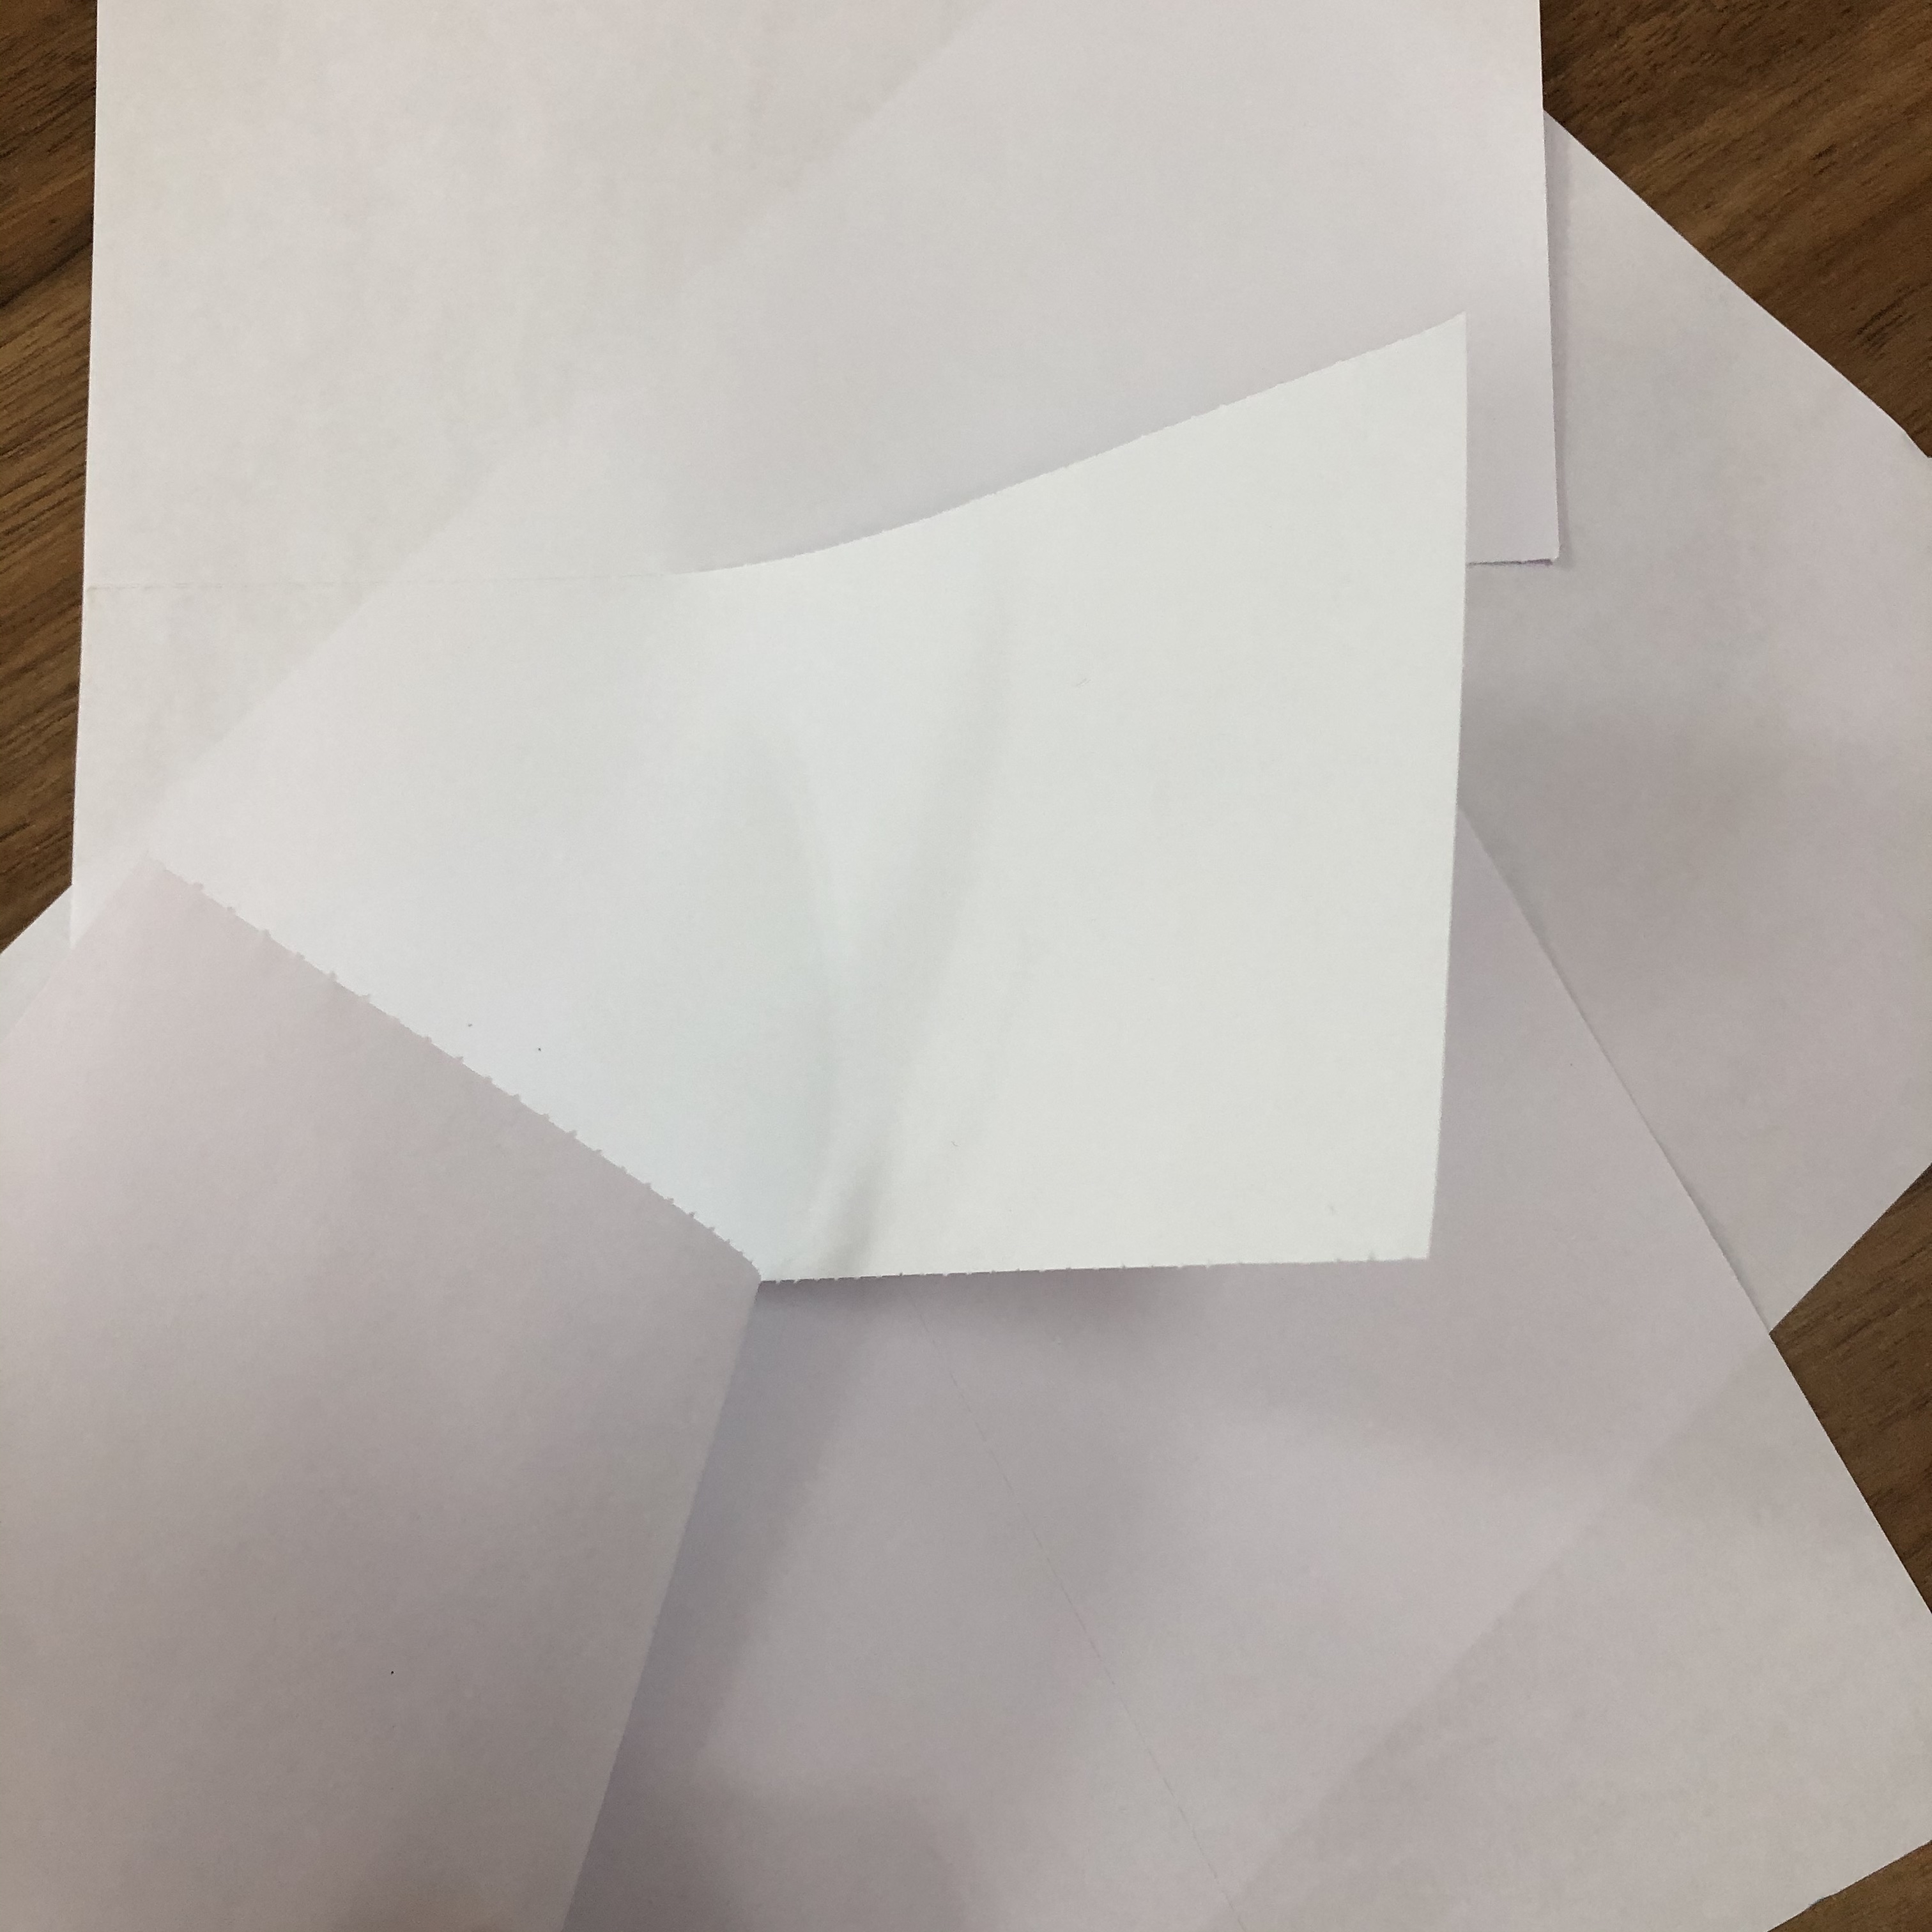 wholesale 70gsm 80gsm pure white A4 bisector paper A4 copy paper 1000 sheets for laser printing